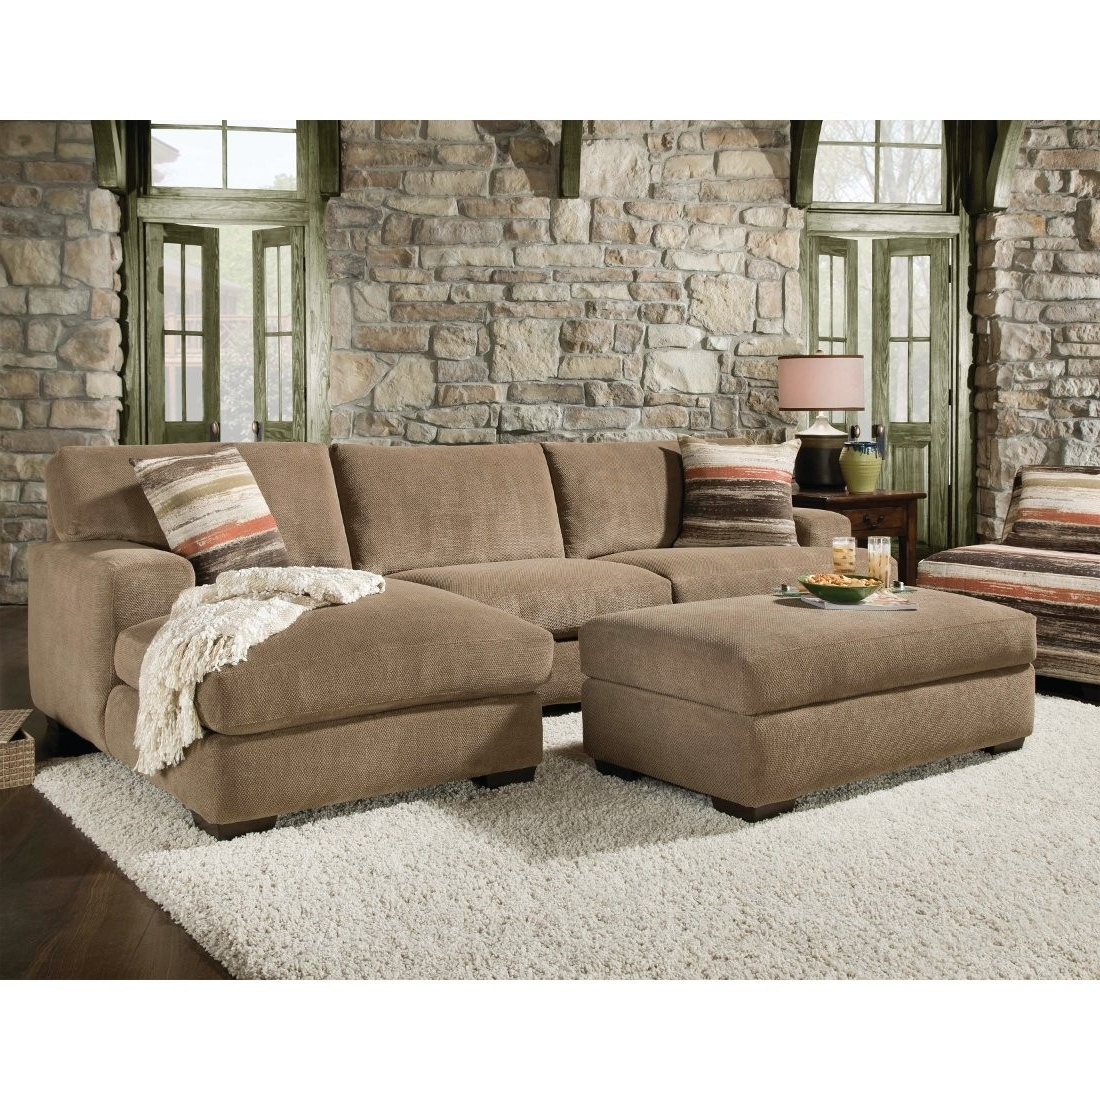 Recent Raymour And Flanigan Sectional Sofas In Sofa : Extra Large Sectionals With Chaise Deep Sofas Deep Couches (View 12 of 15)